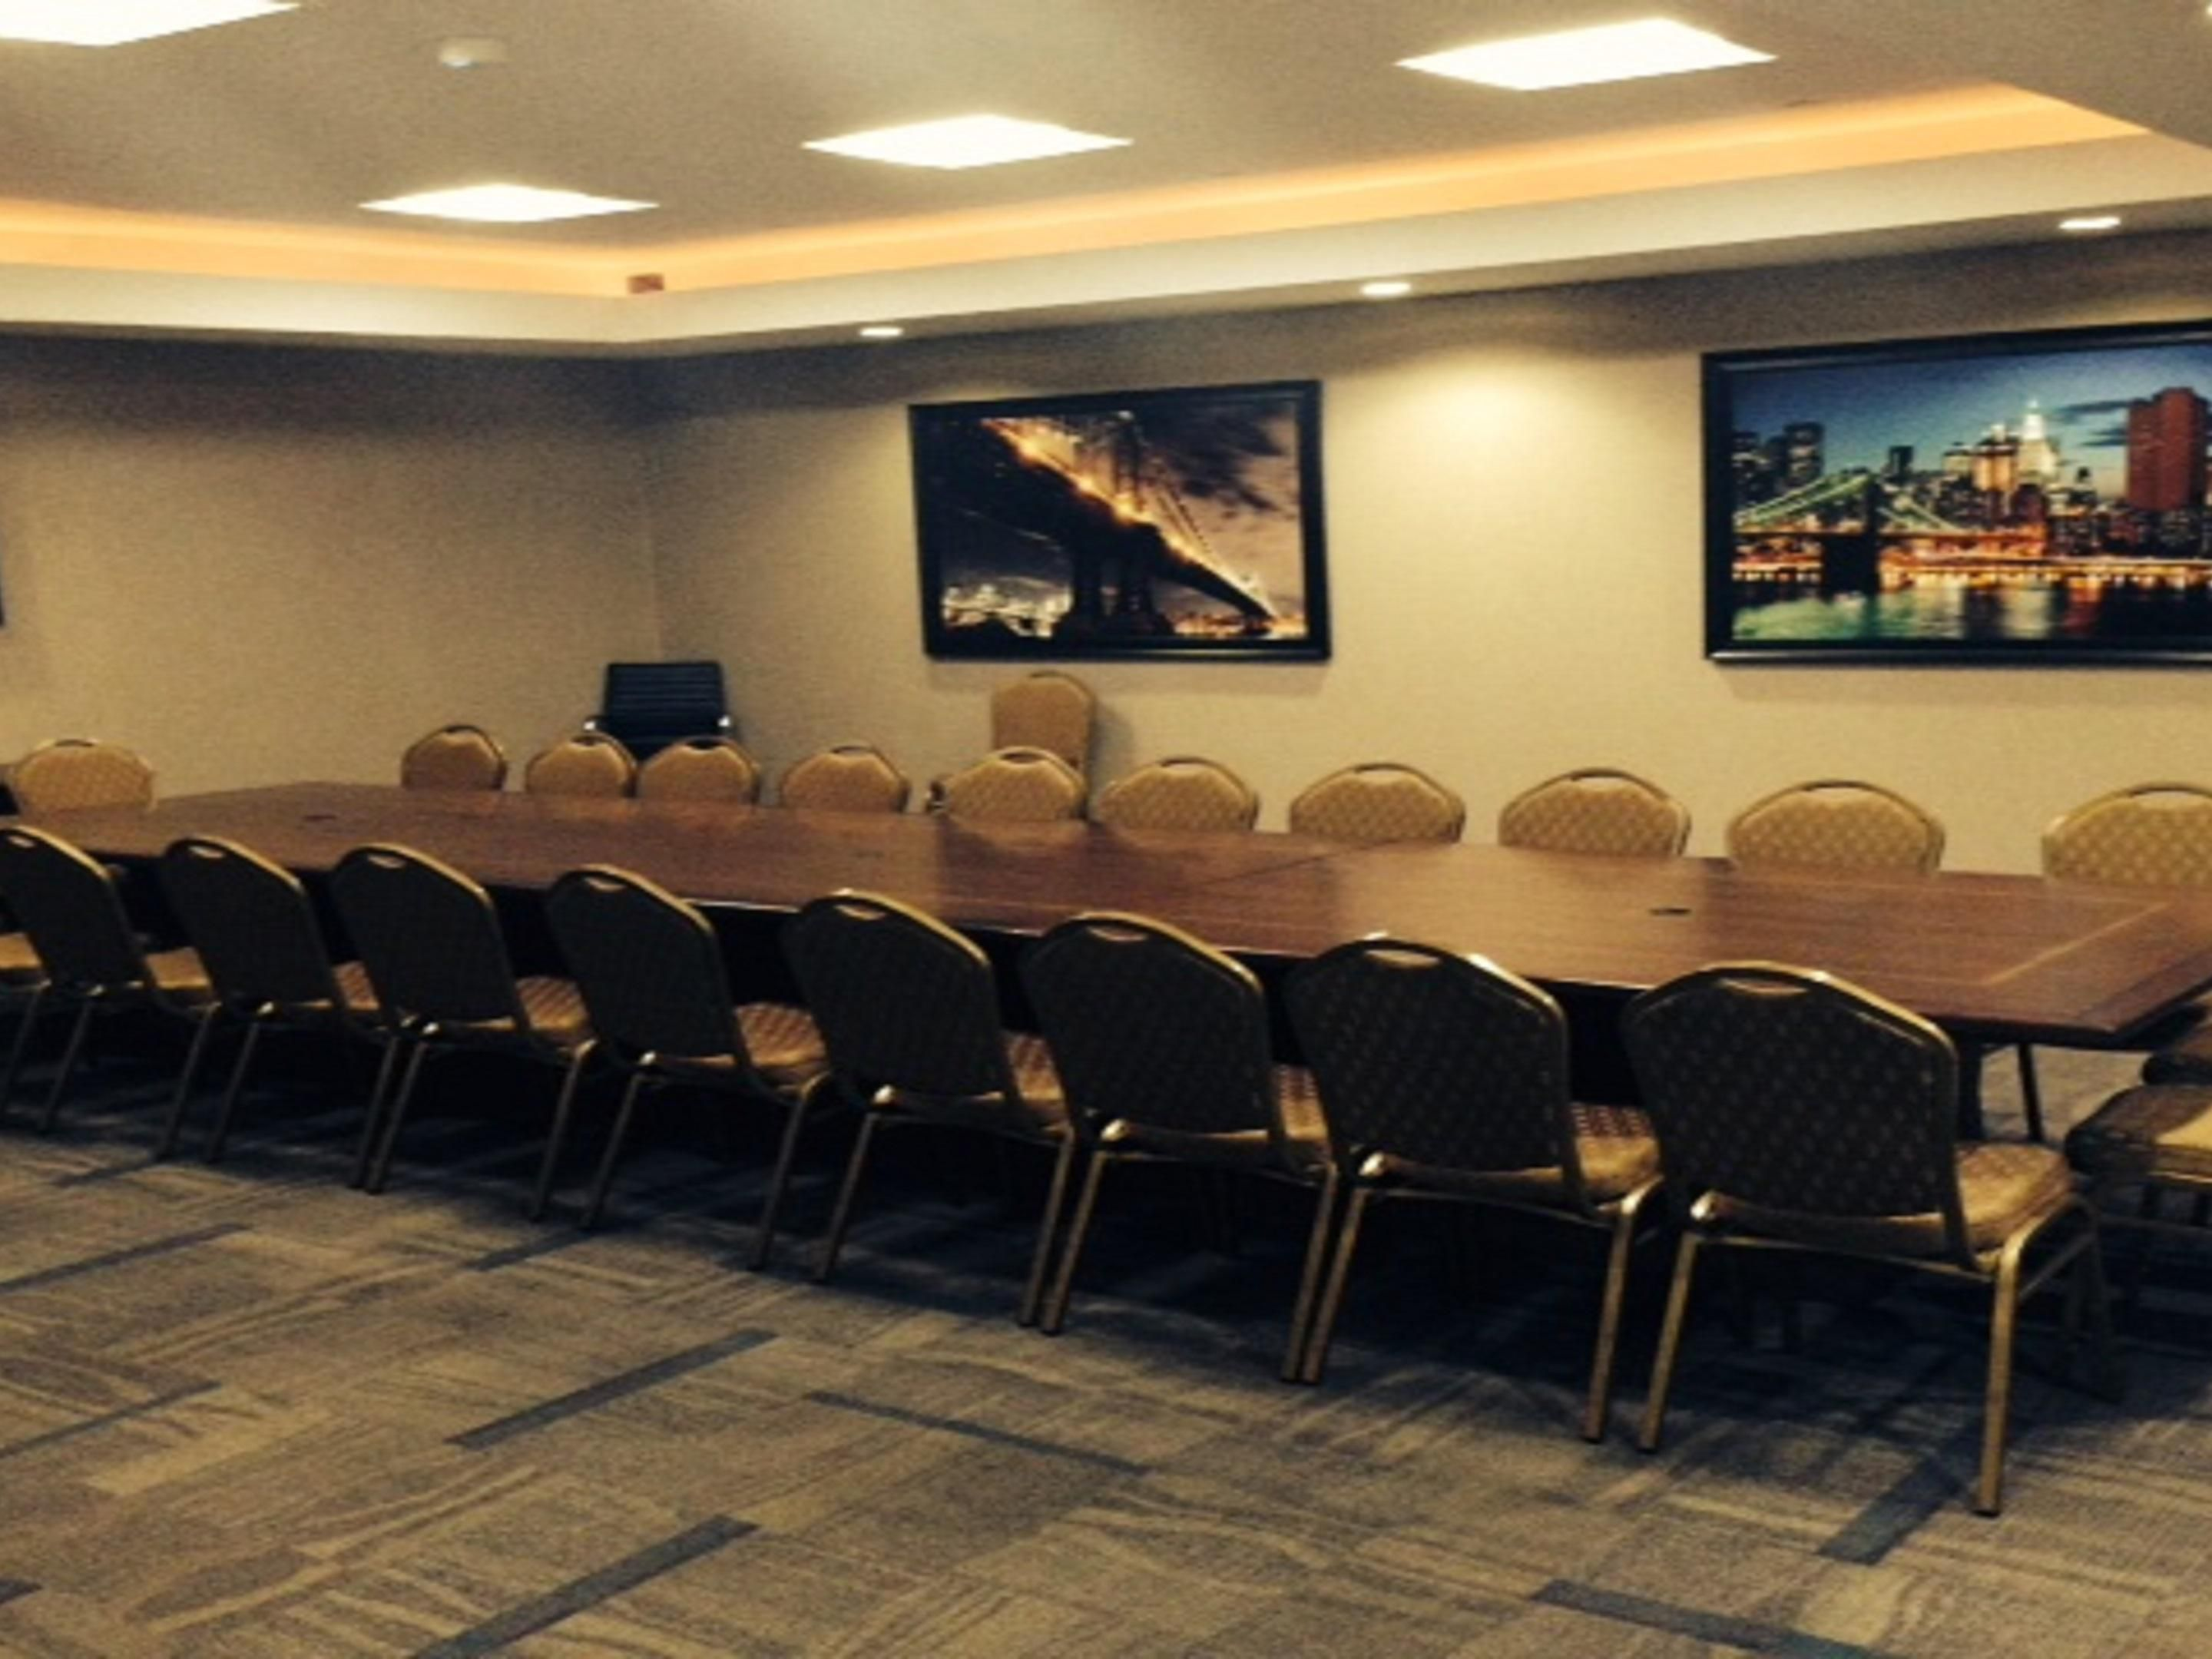 The Astoria Meeting Room is designed  for corporate meetings.